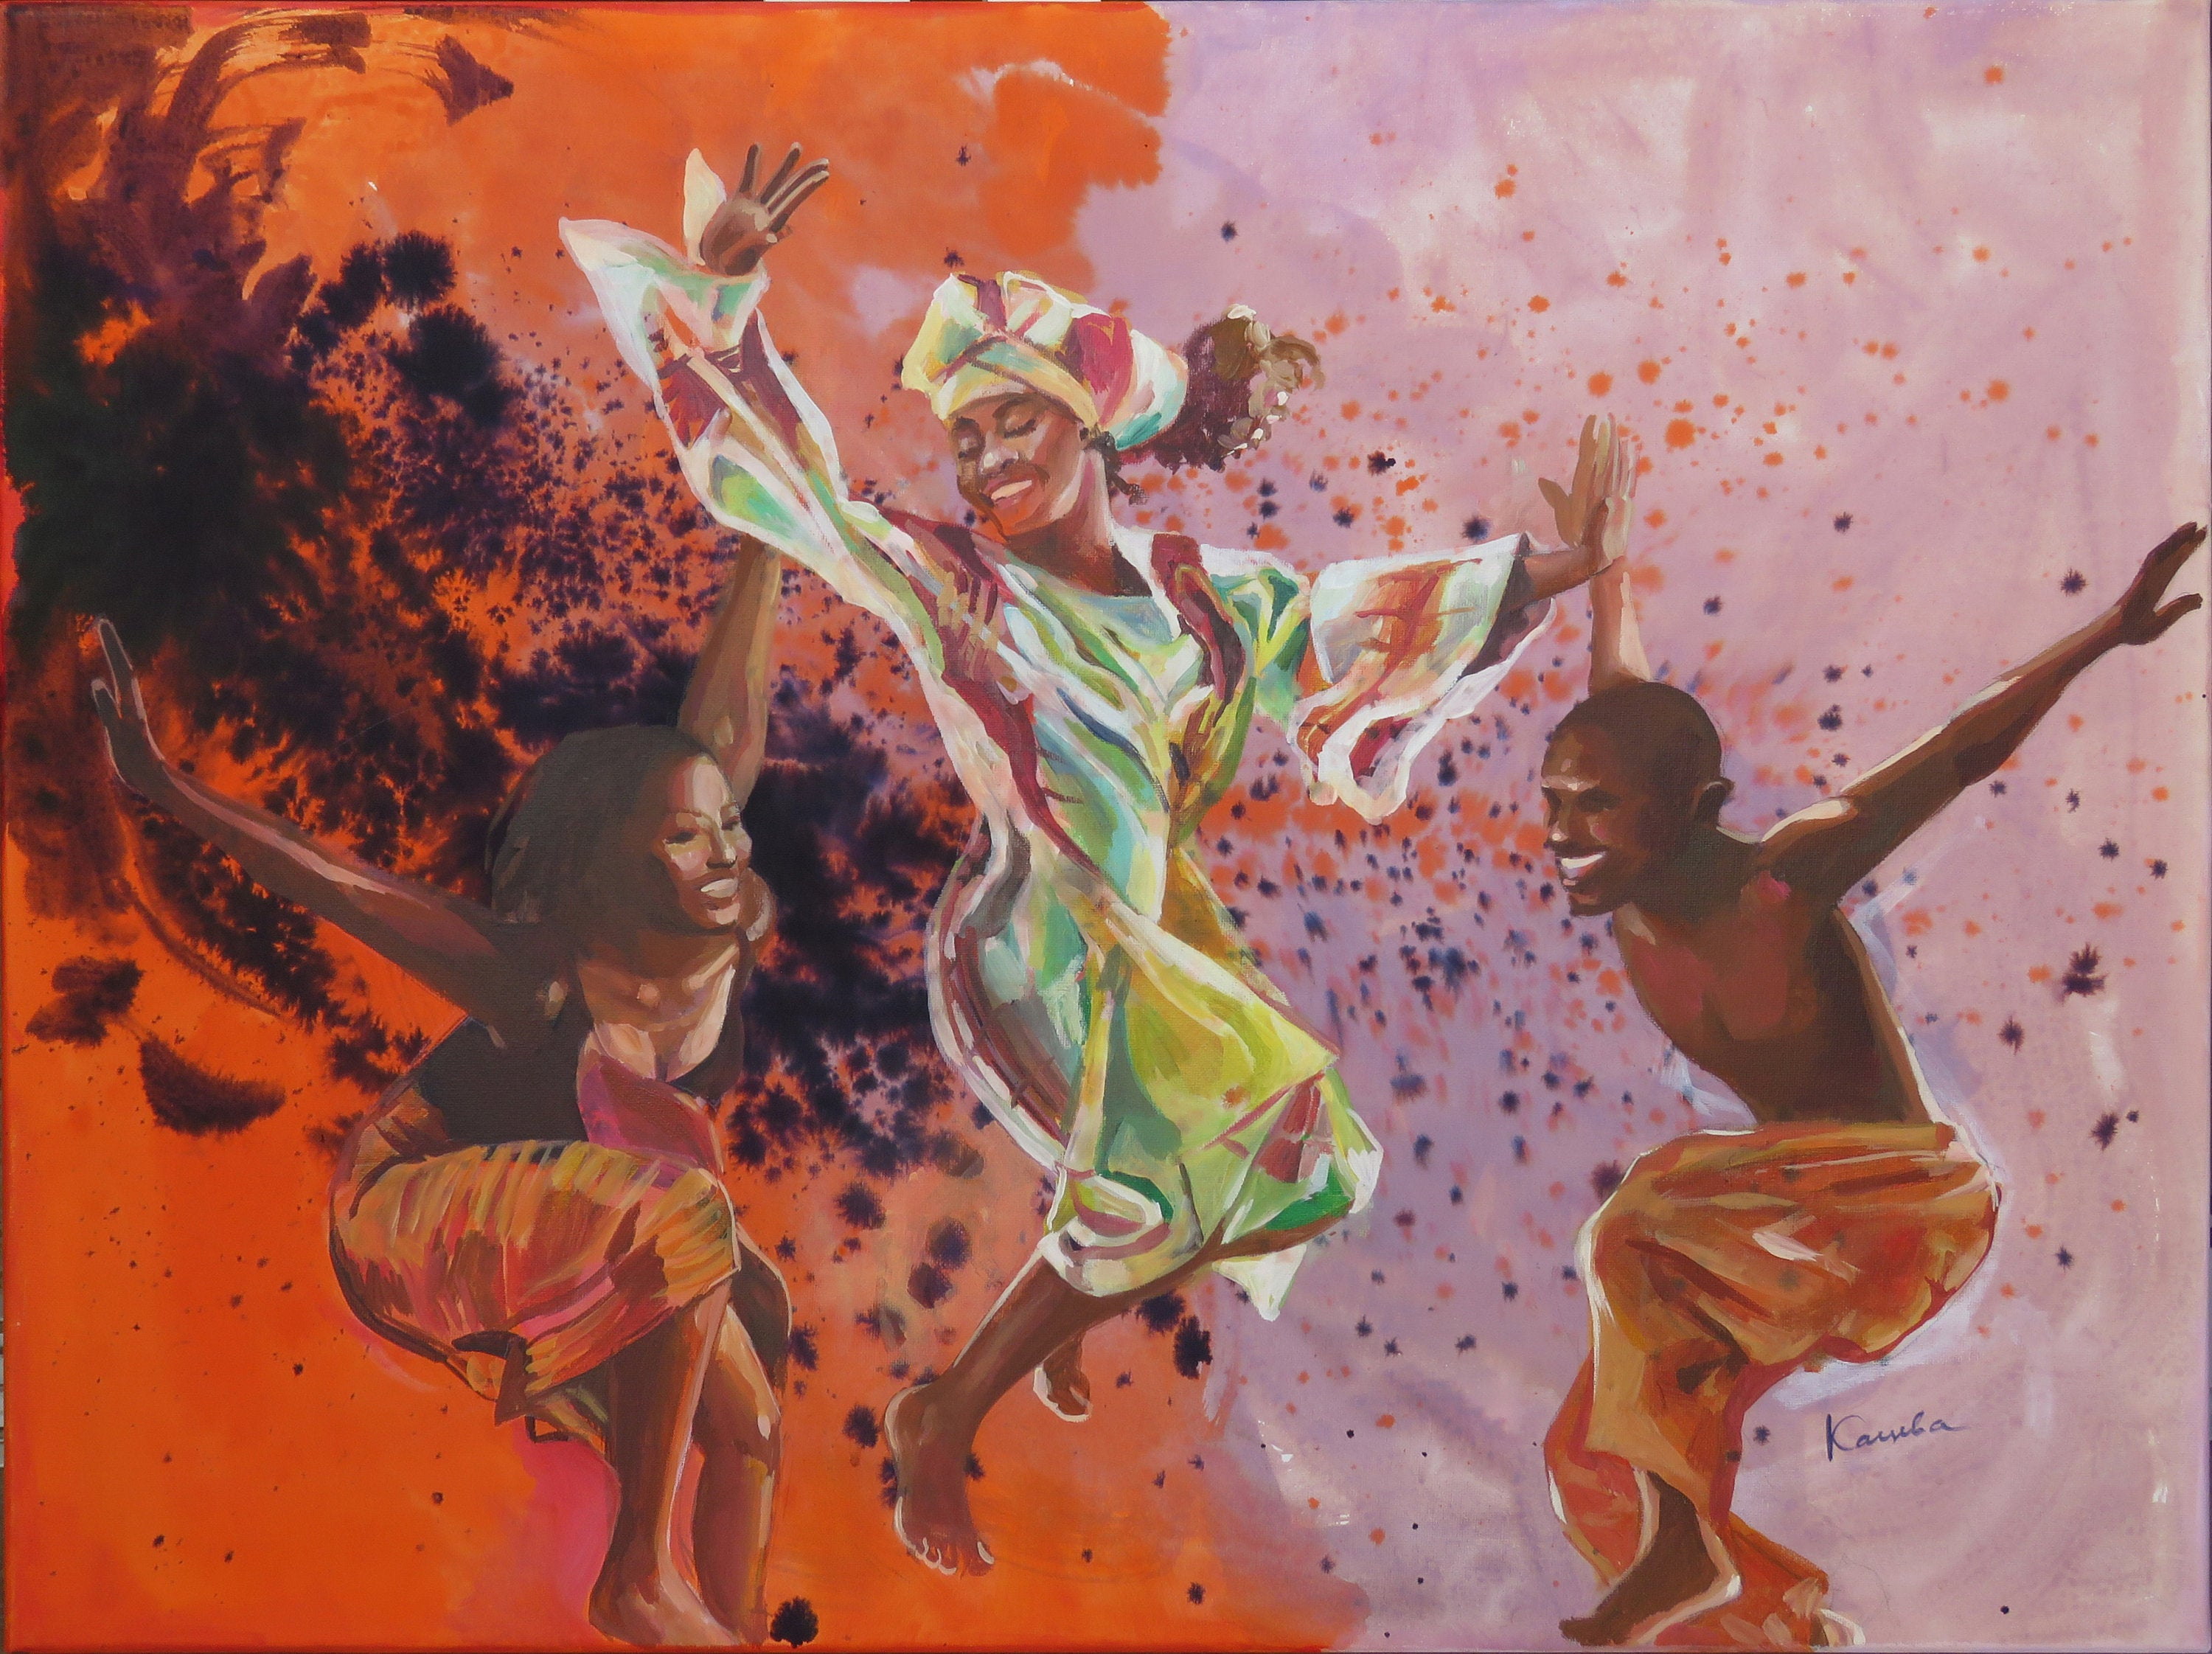 African Dancers, Acrylic Painting On Canvas, Mixed Media: Ink, Acrylic, Home Decor, Large Canvas Wall Art, Original Art Happy Women Throughout Dance Of Desire Wall Decor (View 6 of 30)